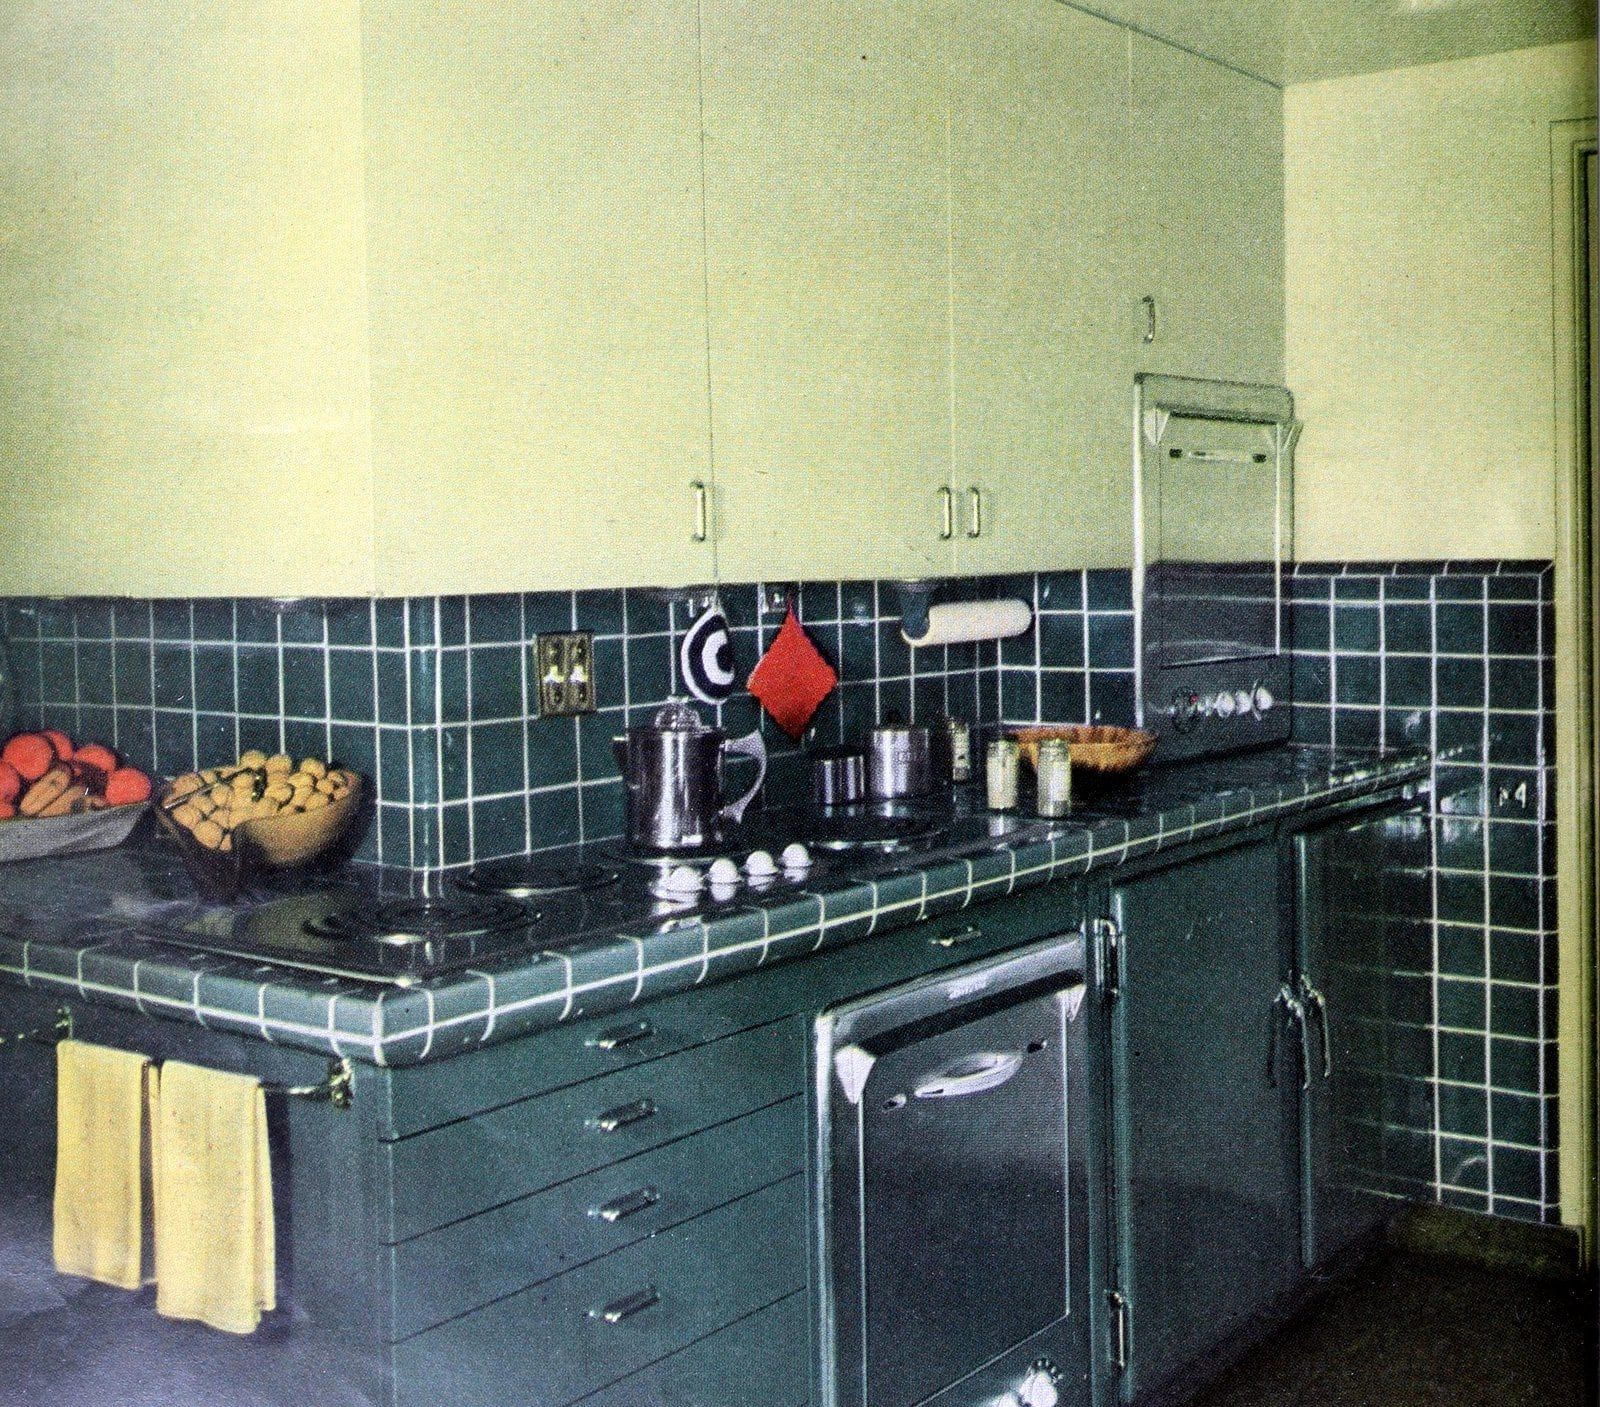 Old-fashioned blue tile kitchen with stainless steel appliances